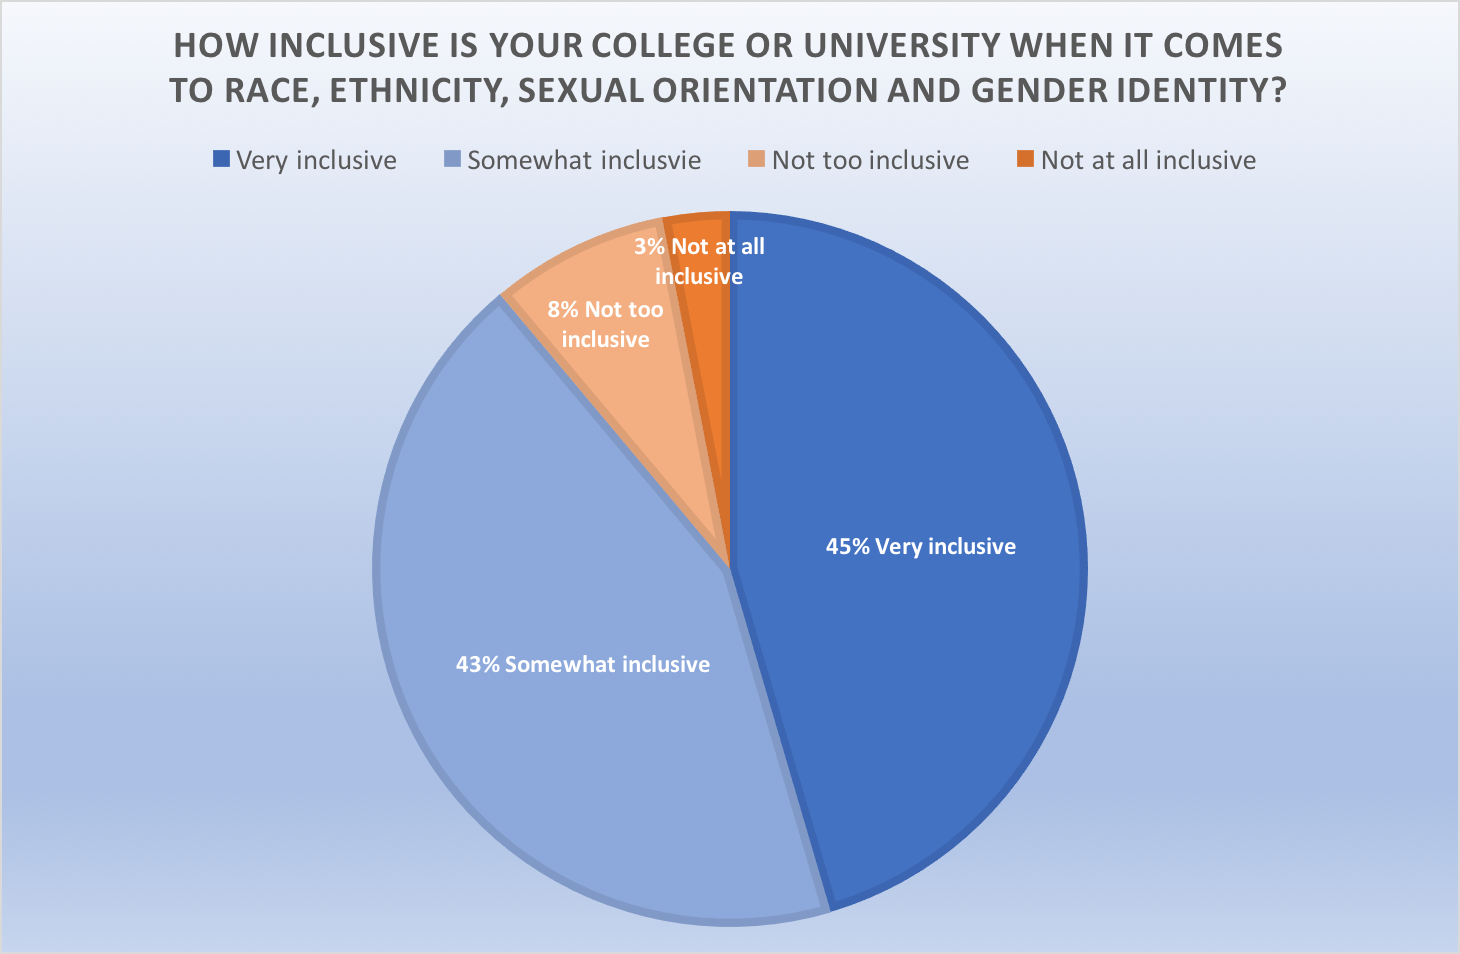 College students tend to believe their university is inclusive. (Data provided by the College Pulse to the Daily Caller)